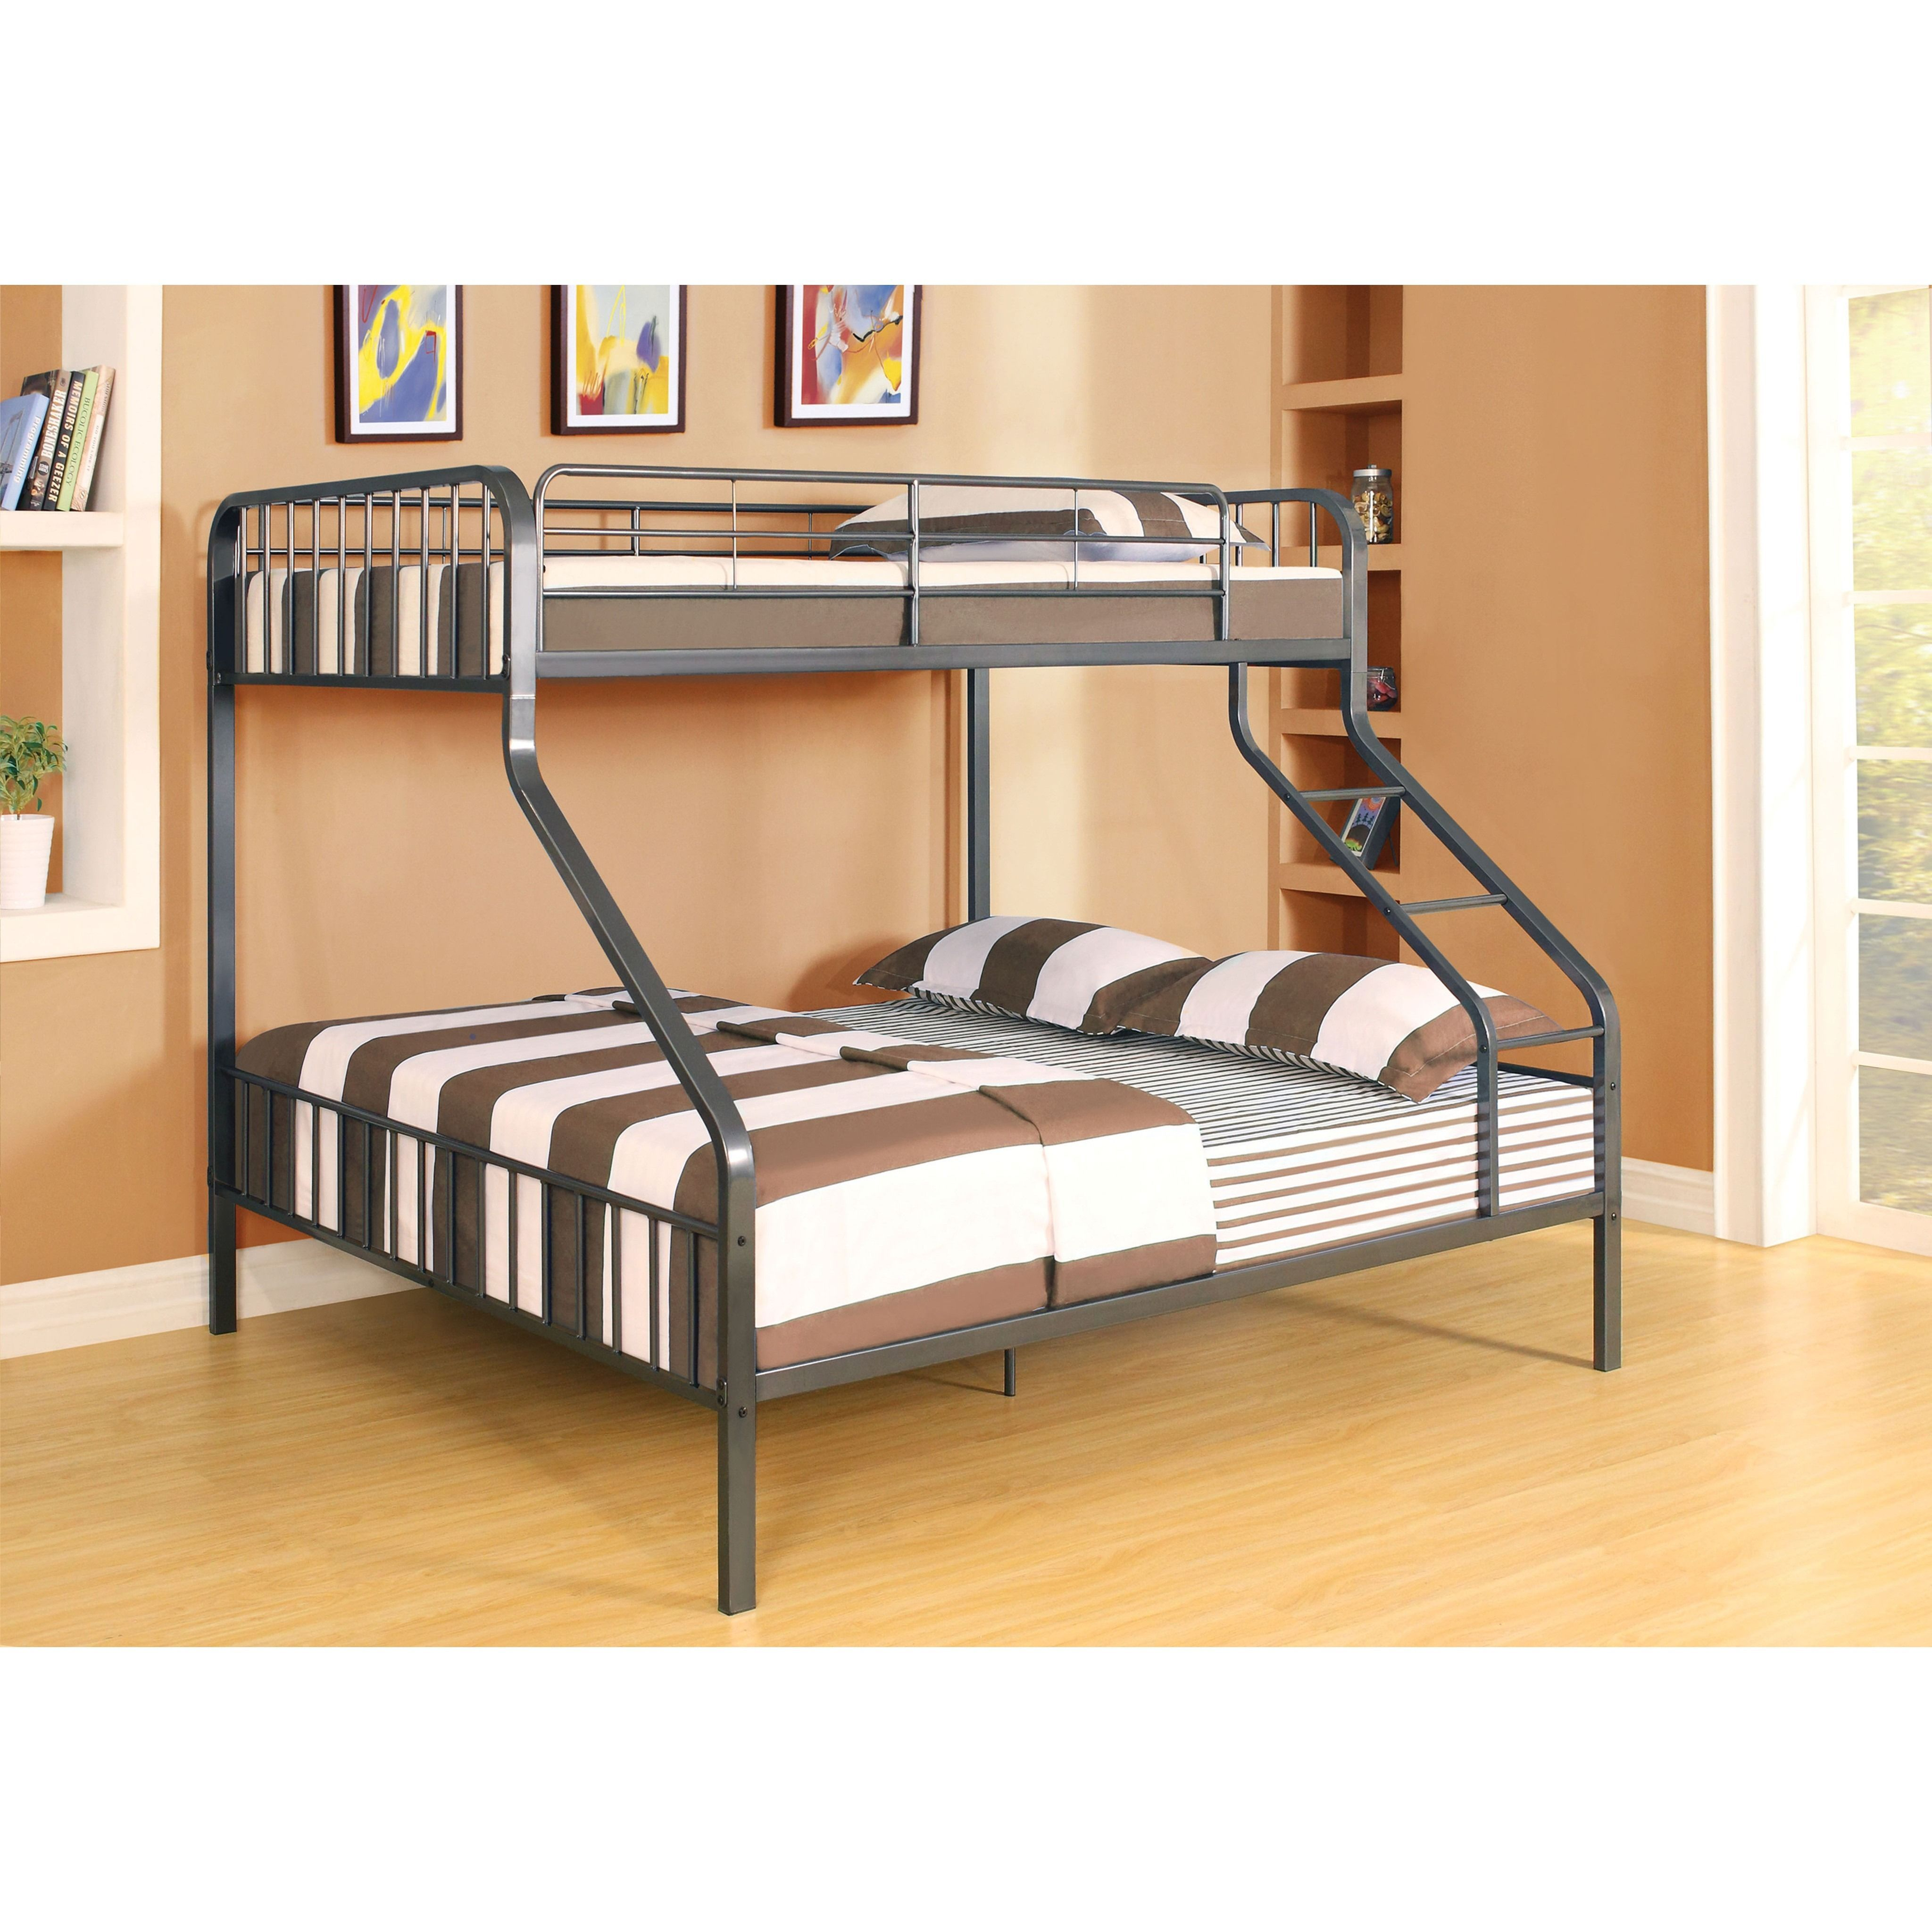 caius gunmetal twin xl over queen bunk bed queen bunk beds twin